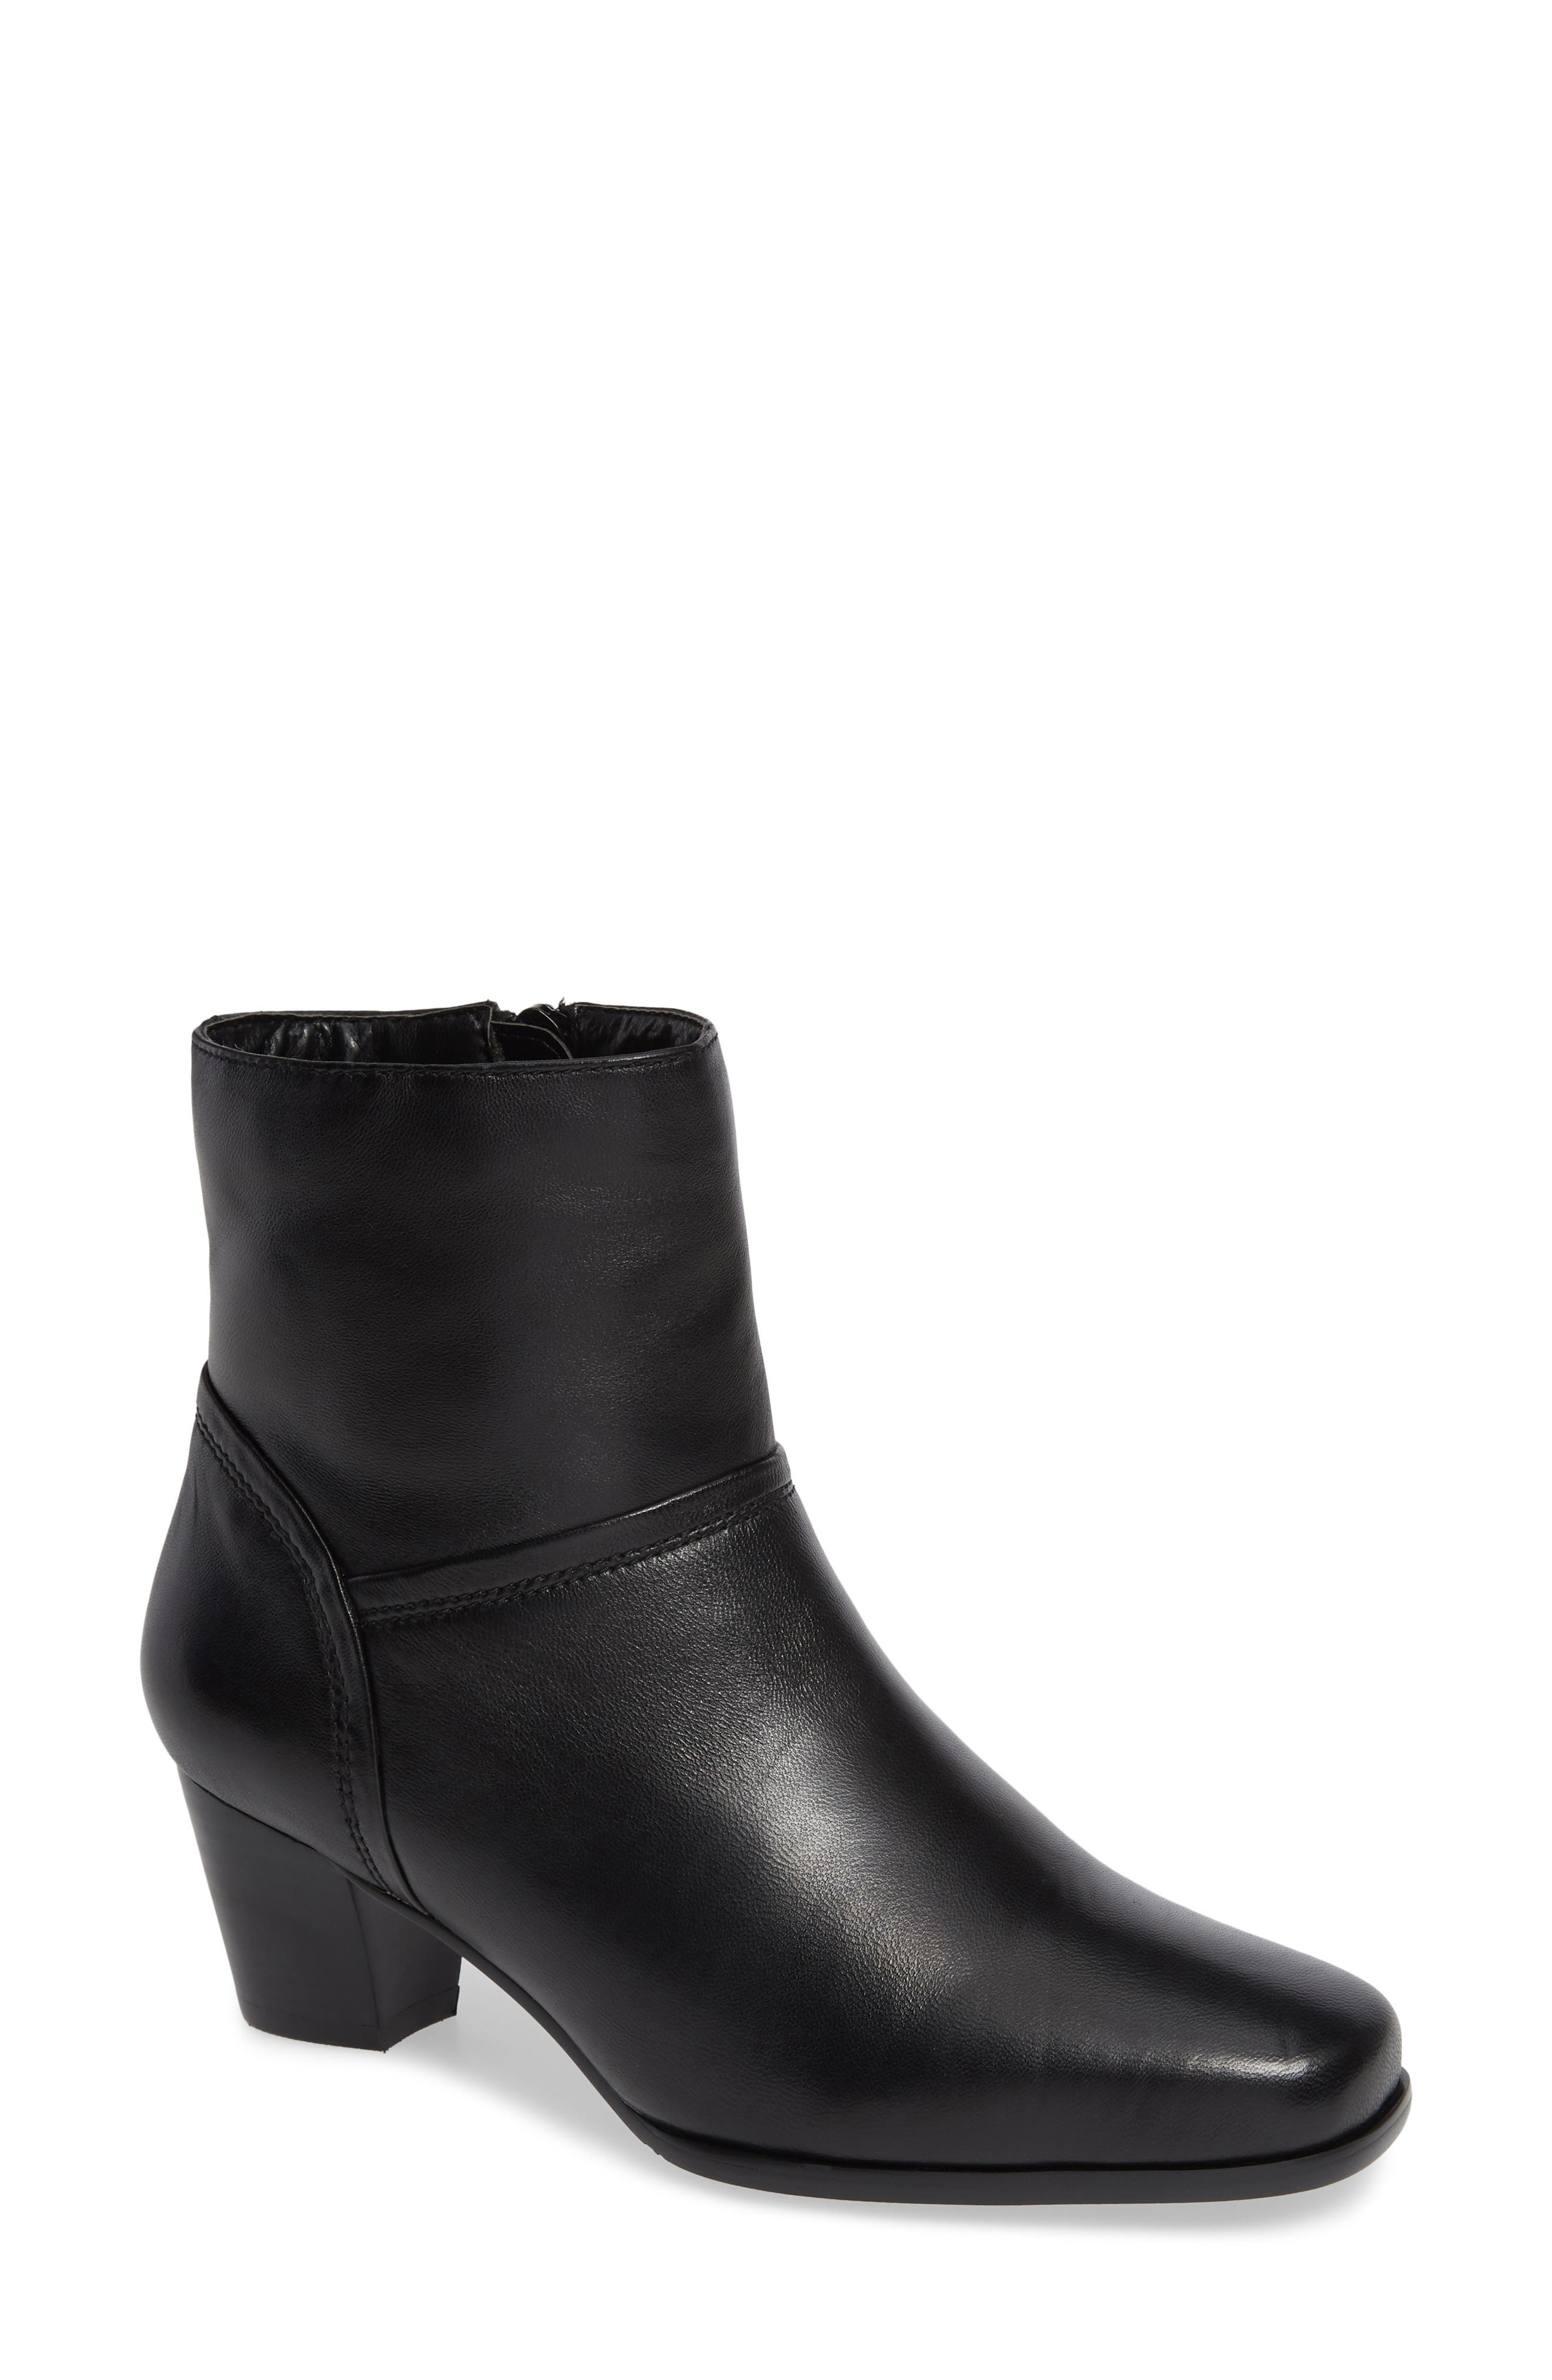 David Tate Model Bootie, Black